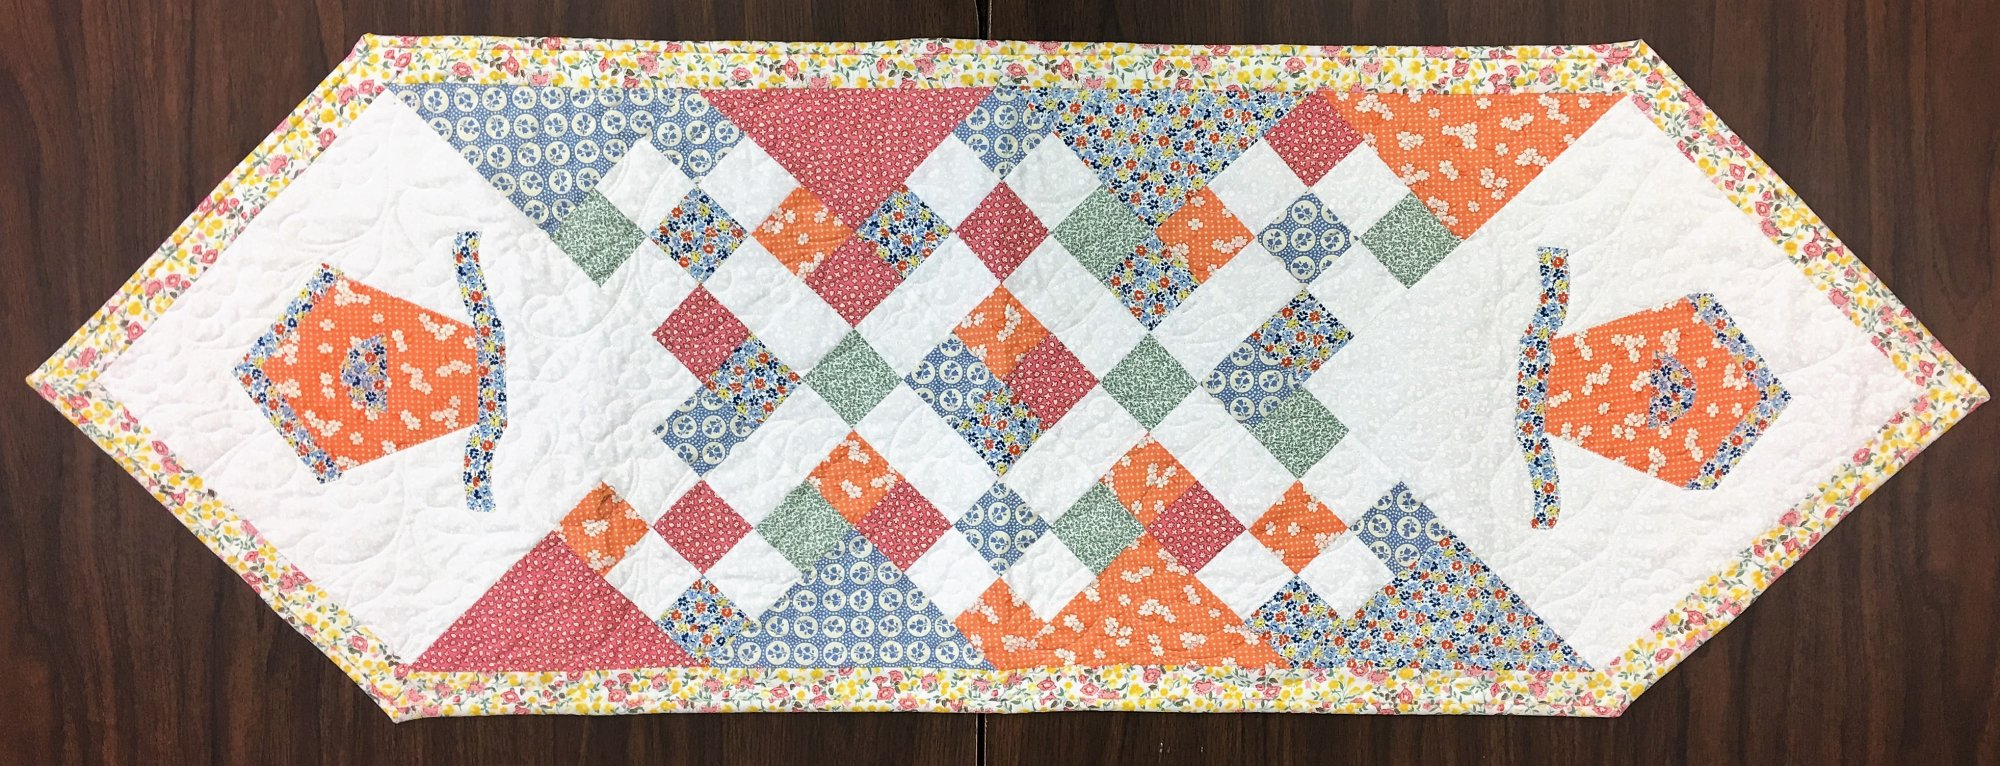 Birdhouse - Quilted Table Runner